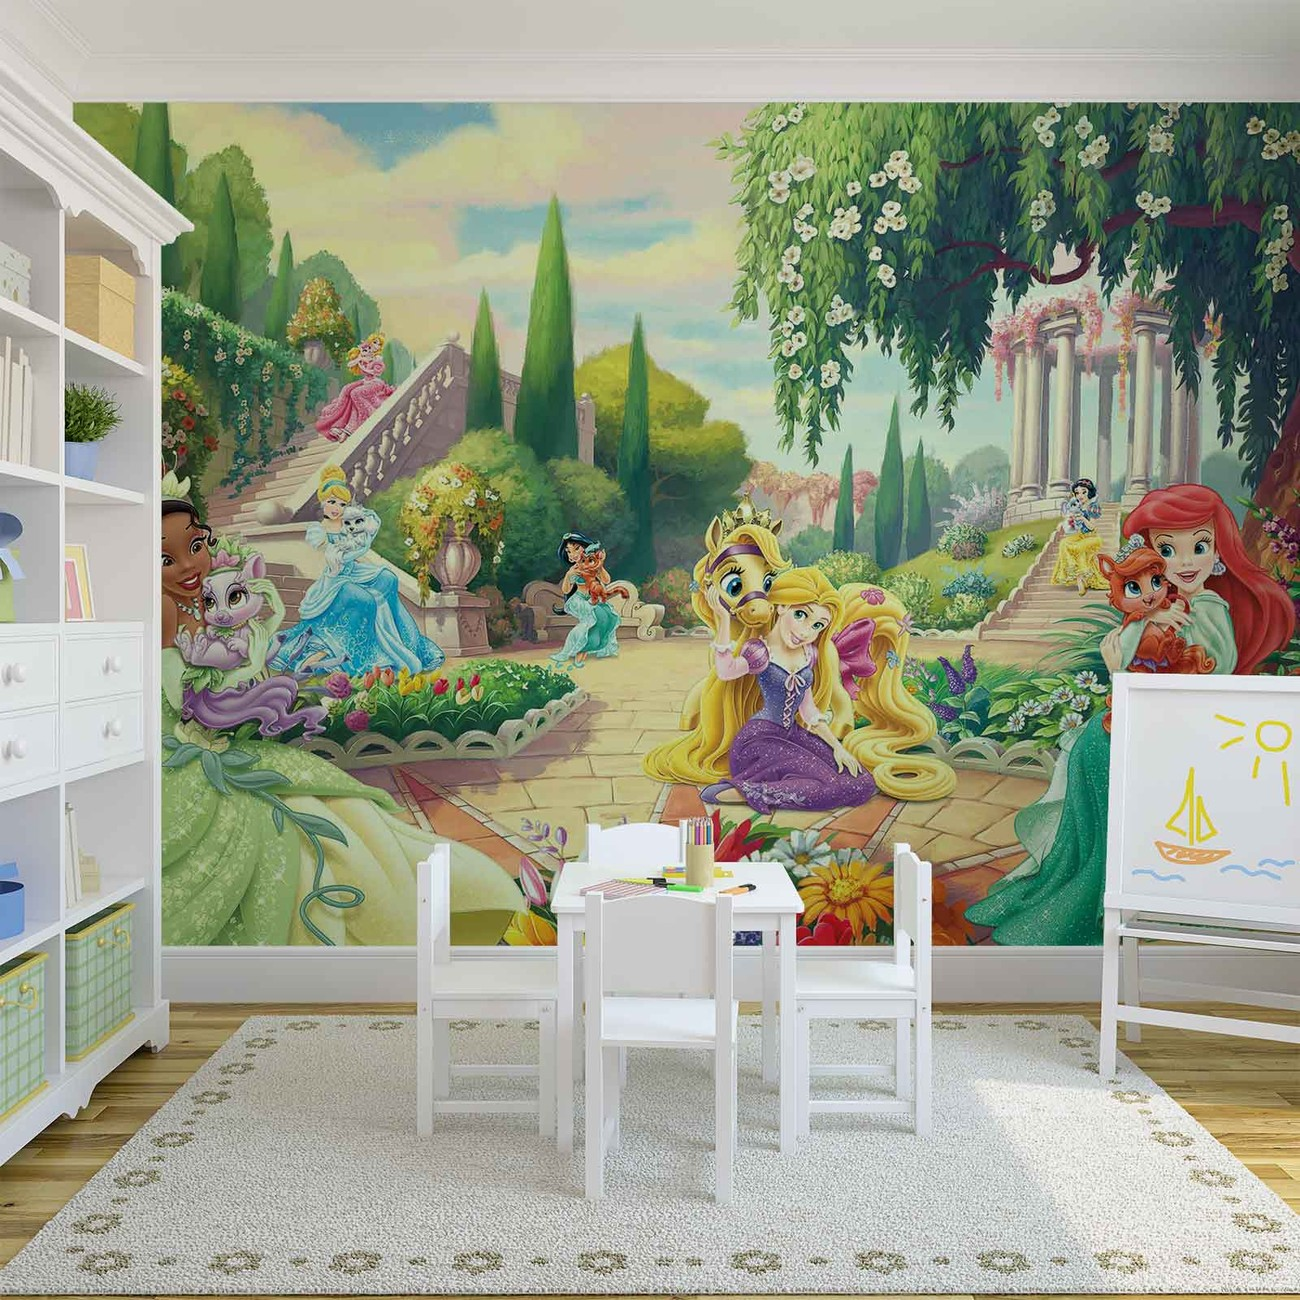 Disney princesses tiana ariel aurora wall paper mural for Disney princess wall mural tesco